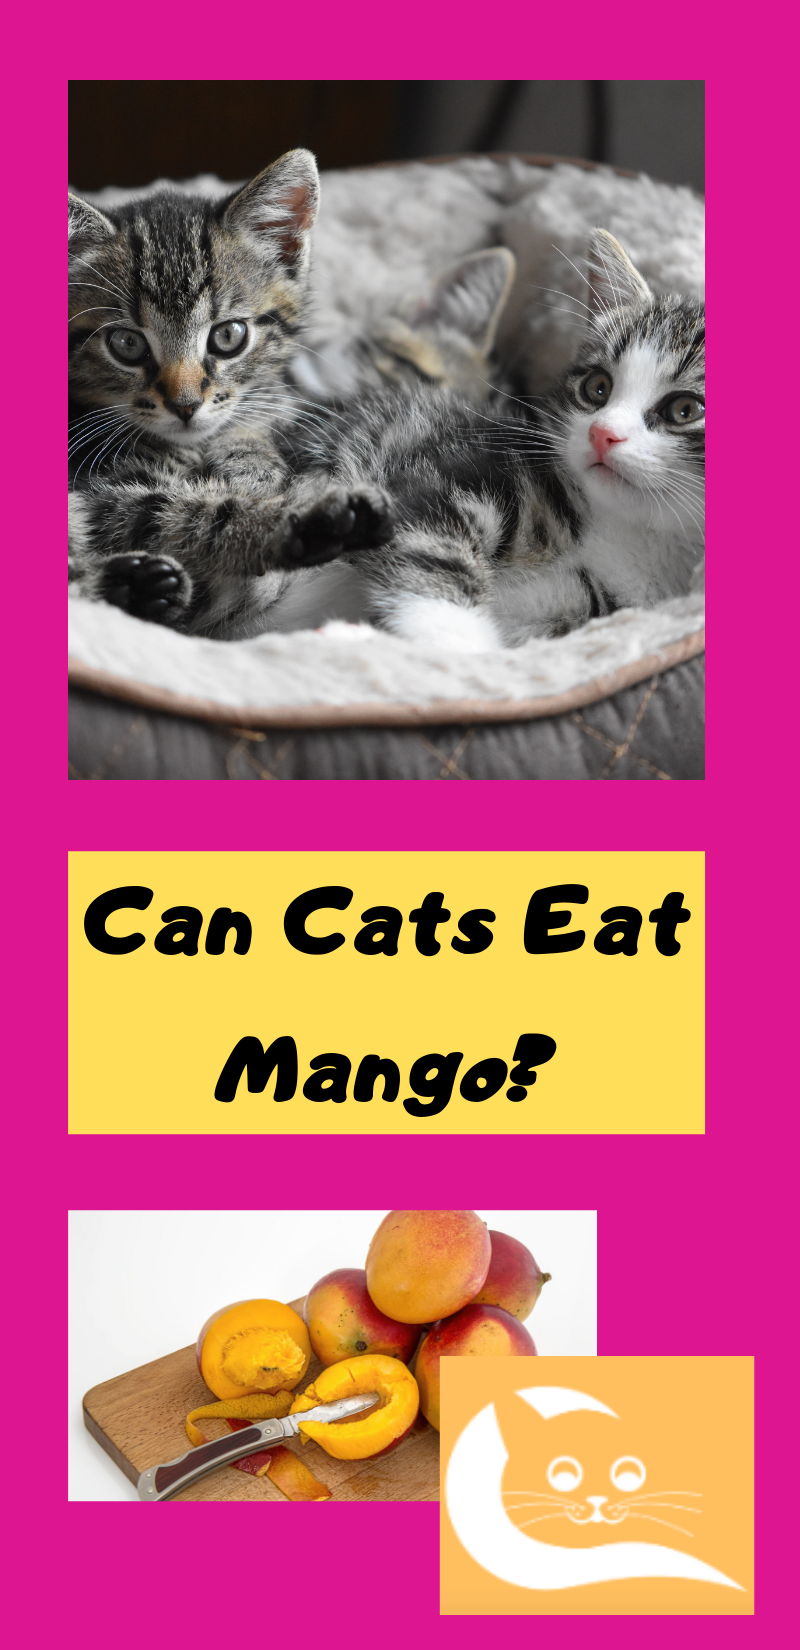 Can Cats Eat Mango Best cat food, Cats, Fancy salads